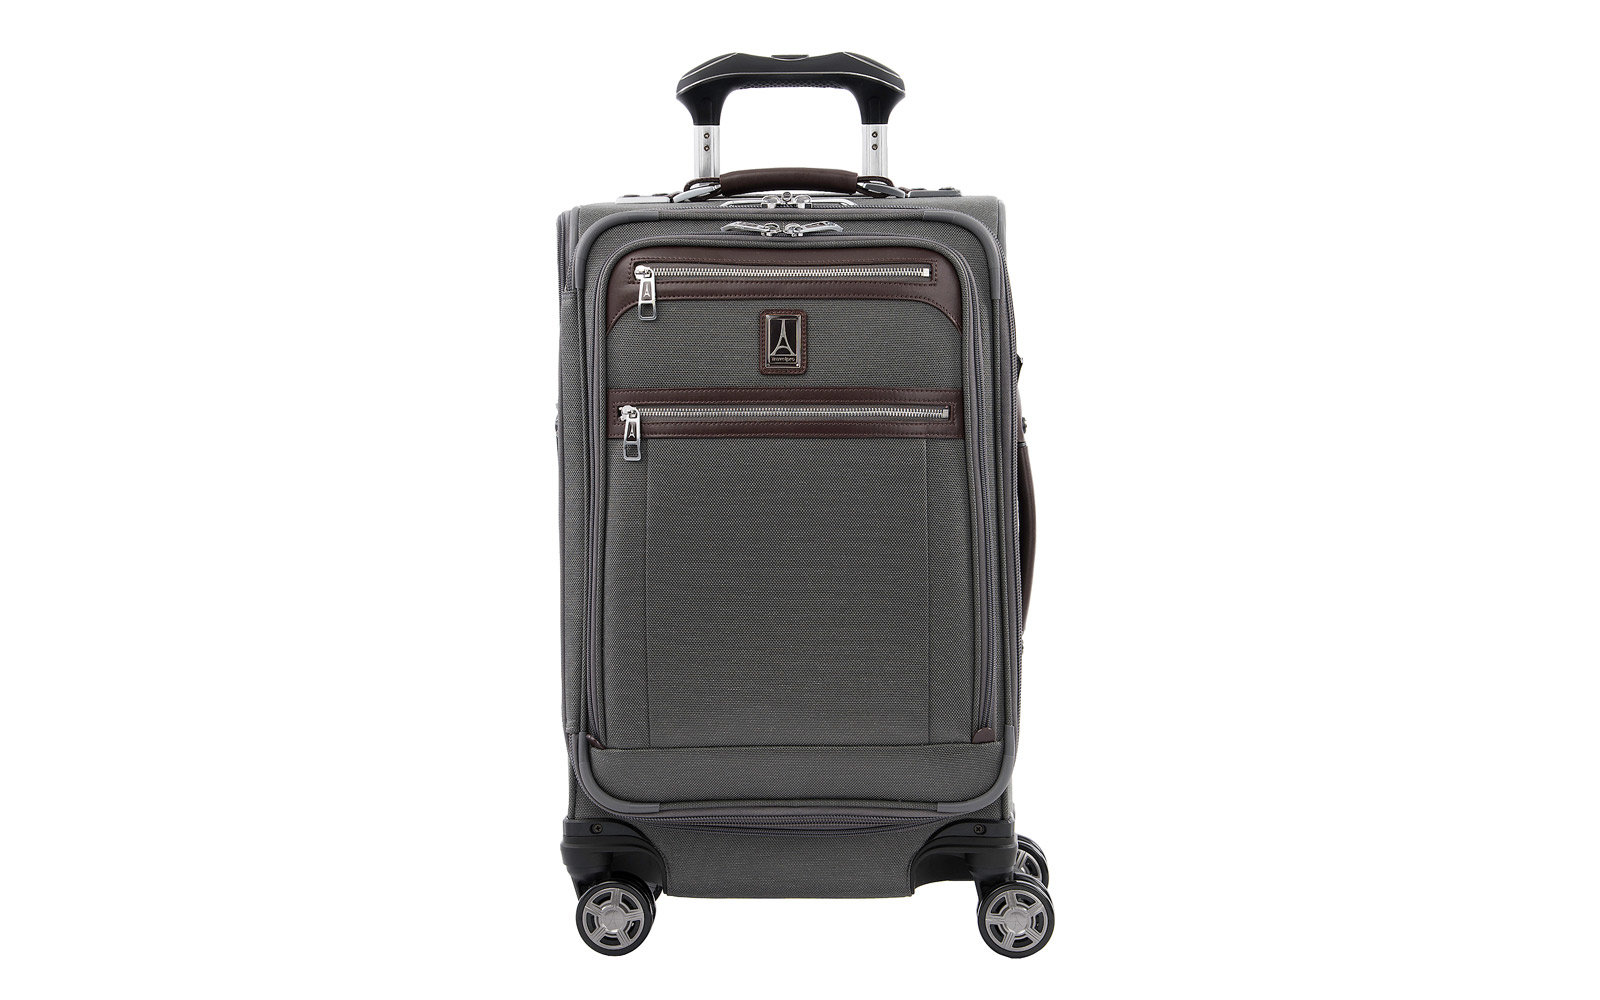 Best Softside Carry-on: Travelpro Platinum Elite 21-inch Expandable Spinner